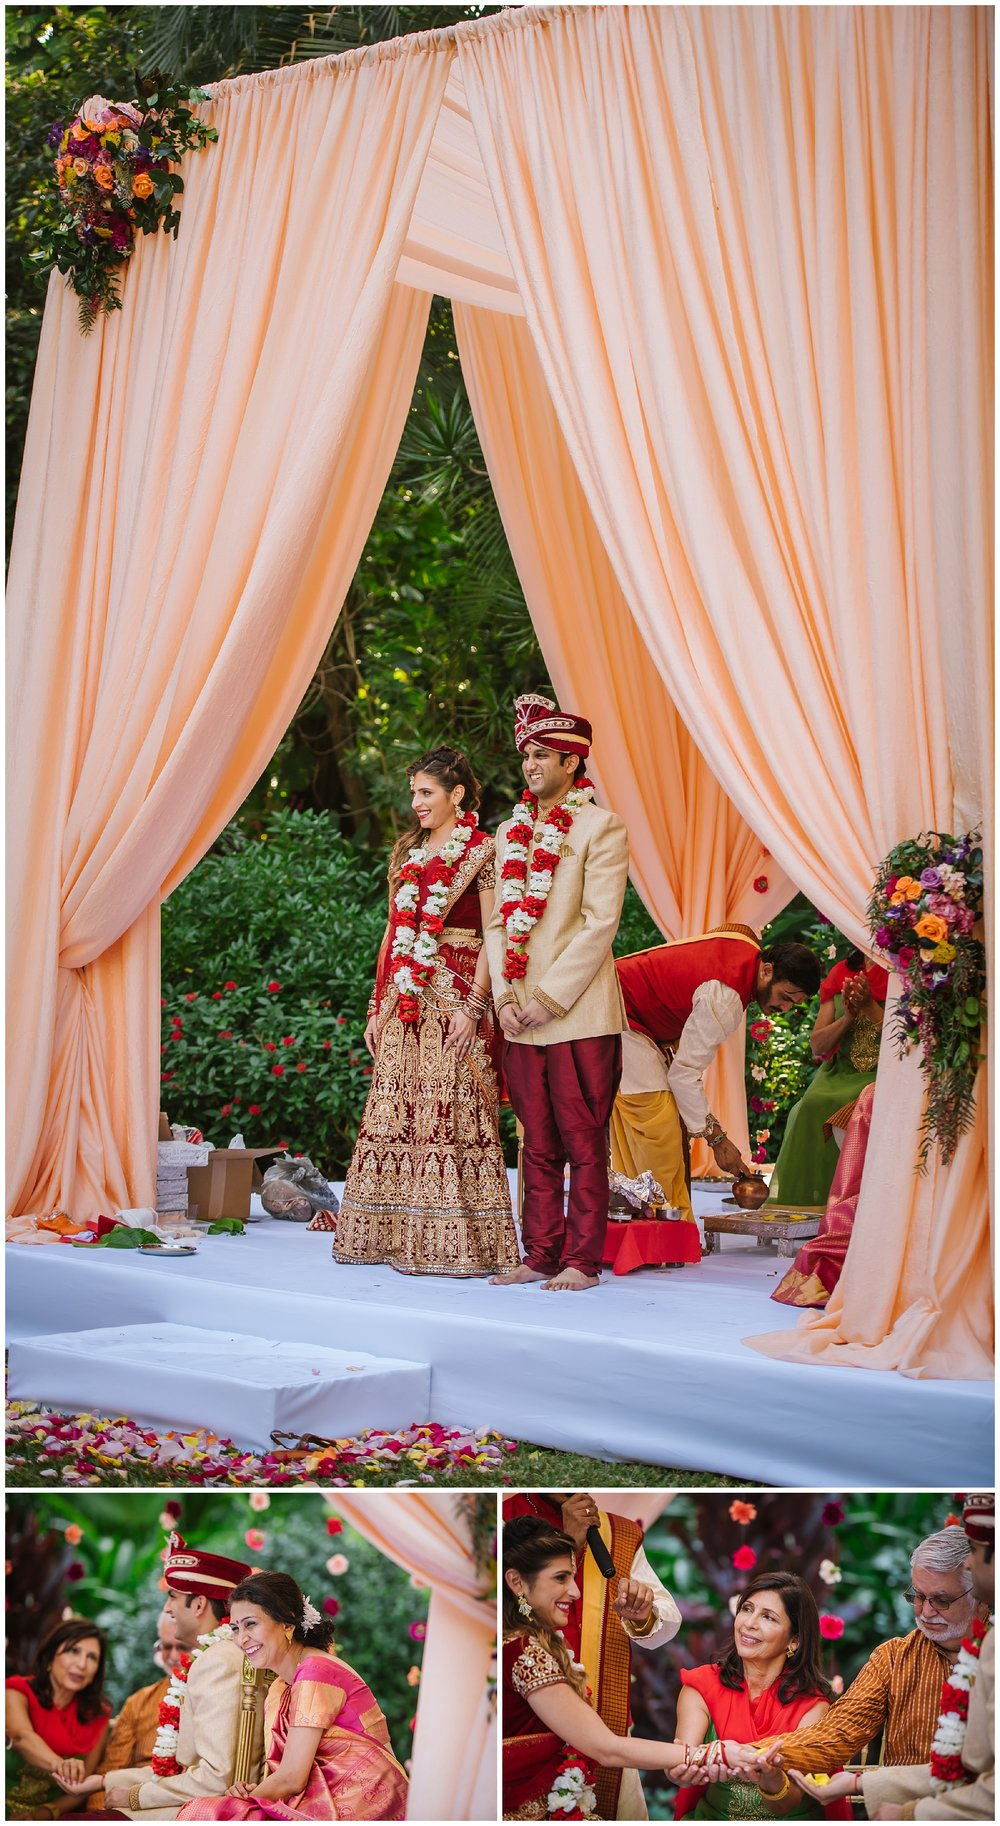 St-pete-indian-wedding-photographer-barat-sunken-gardens_0112.jpg